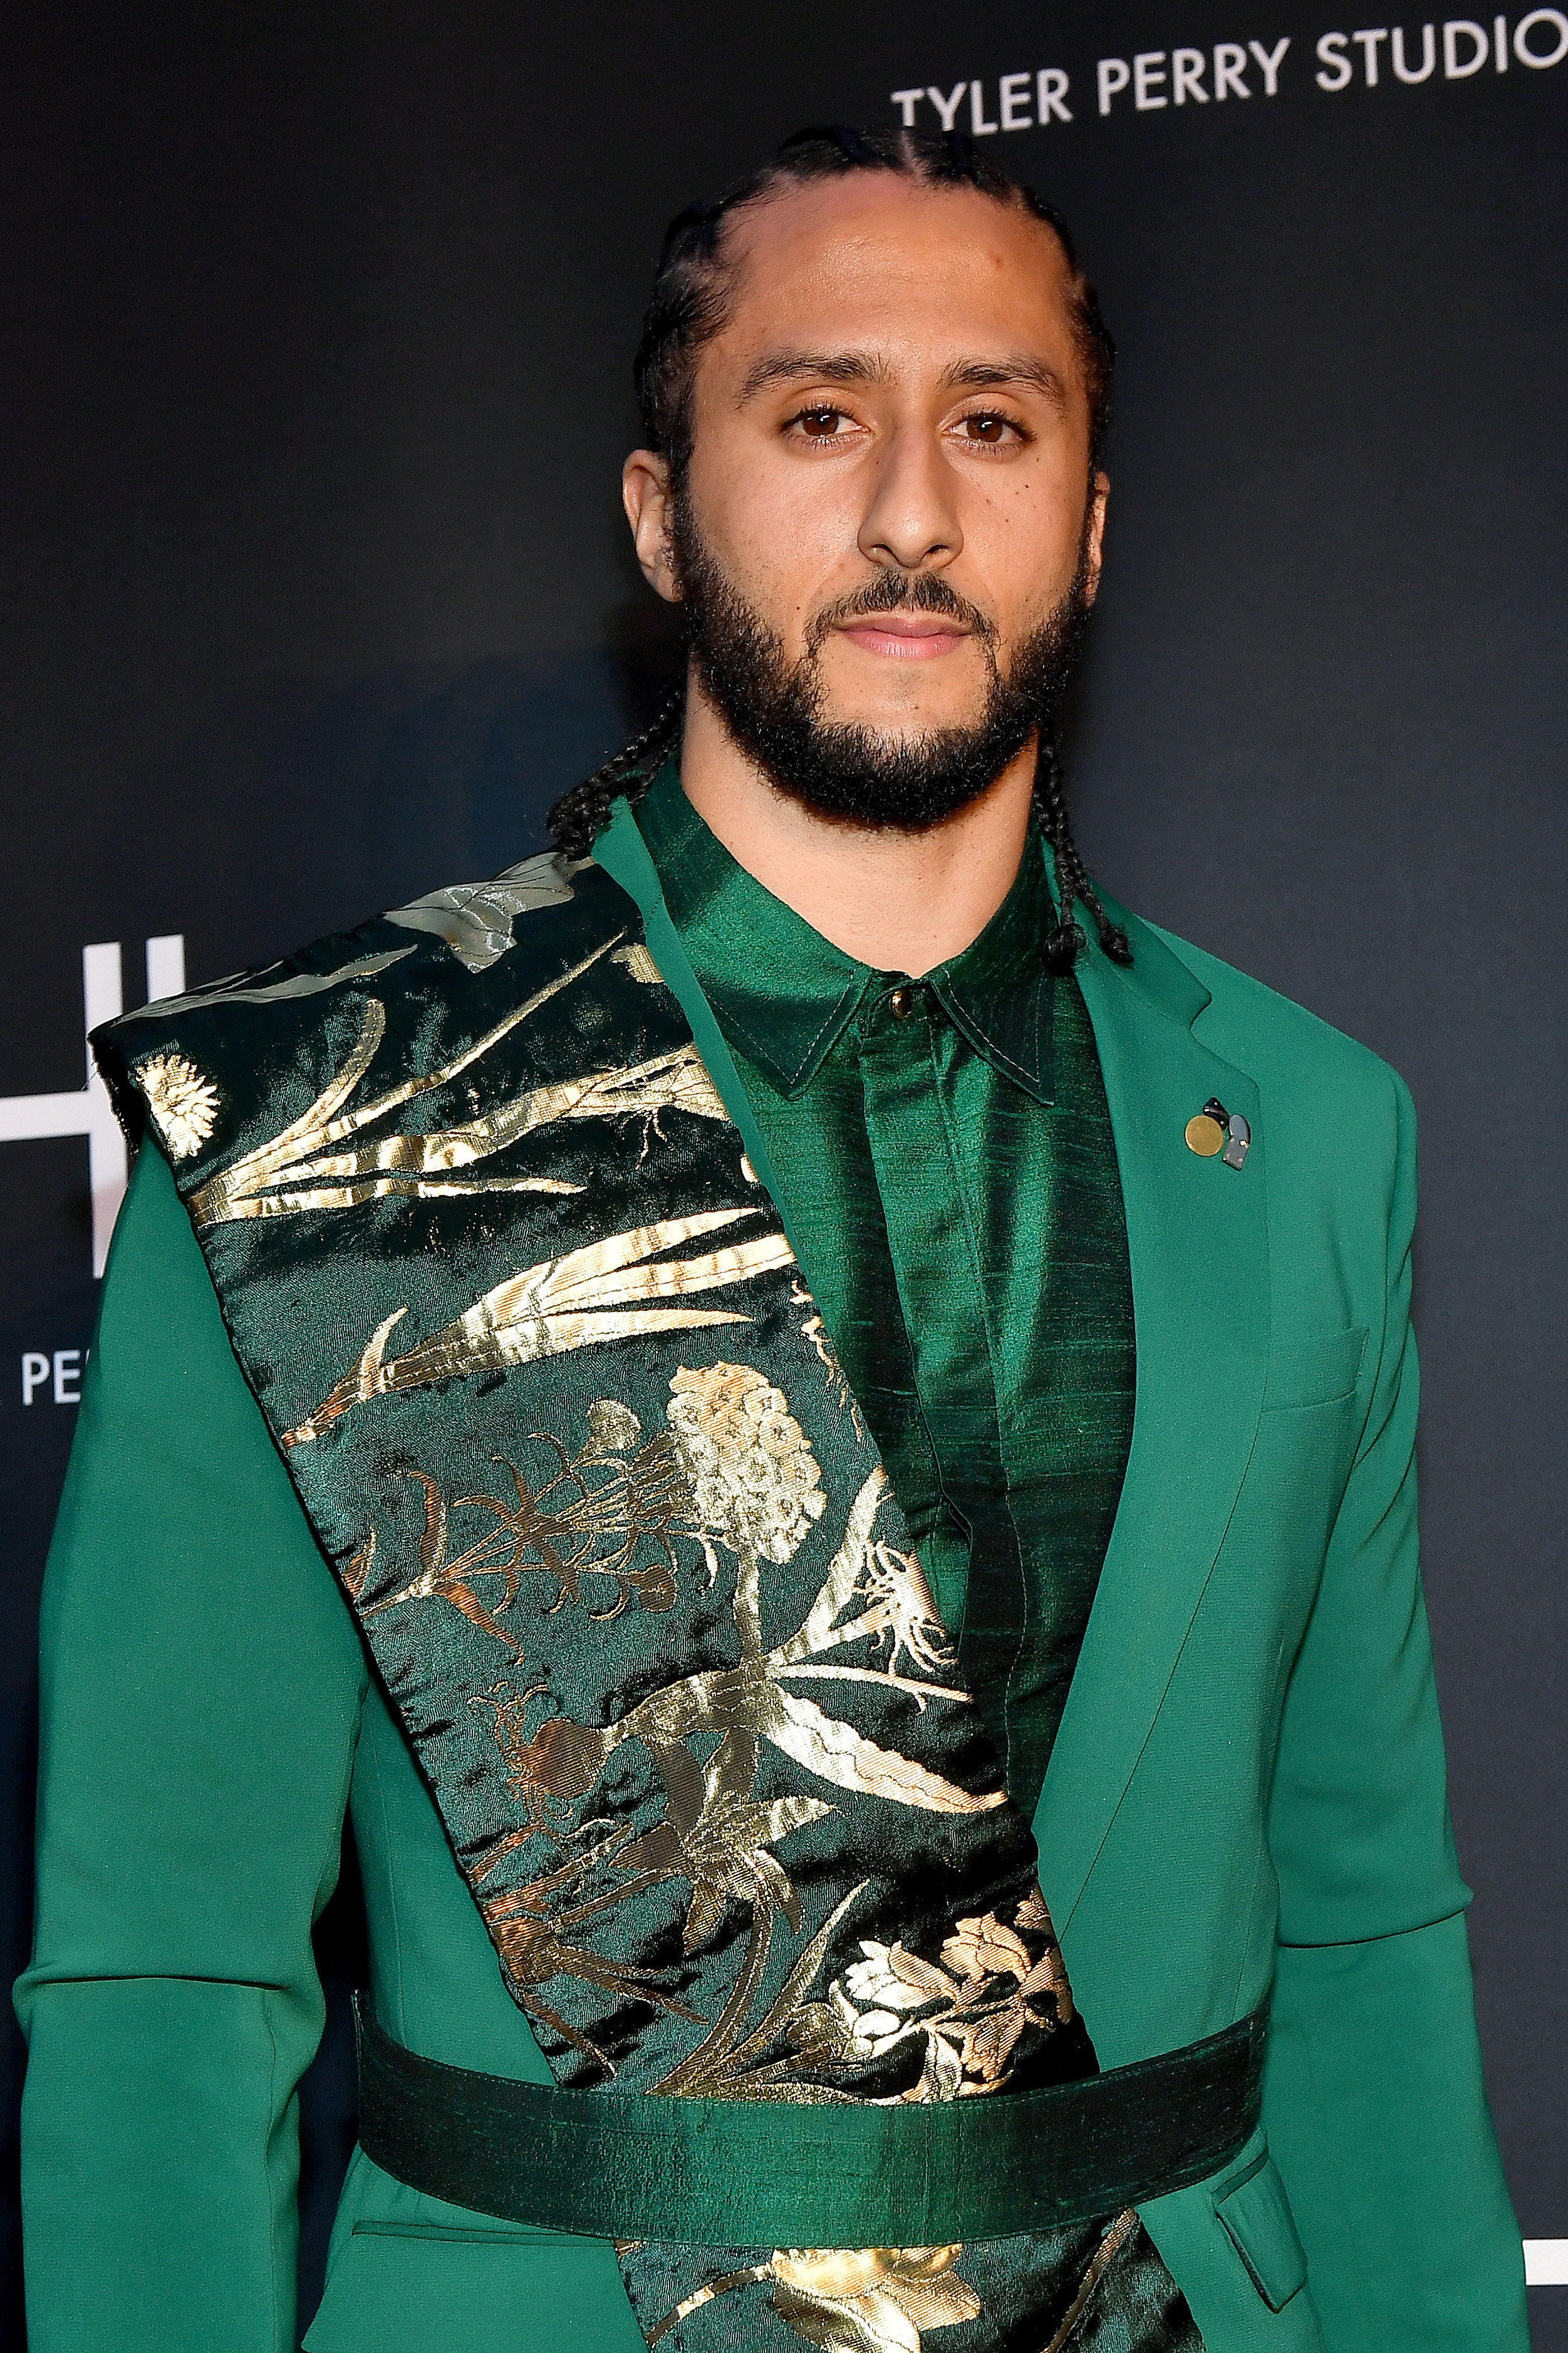 Colin Kaepernick started off his 32nd birthday by helping to feed the homeless people in Oakland, California. He handed out goods and paid for meals.